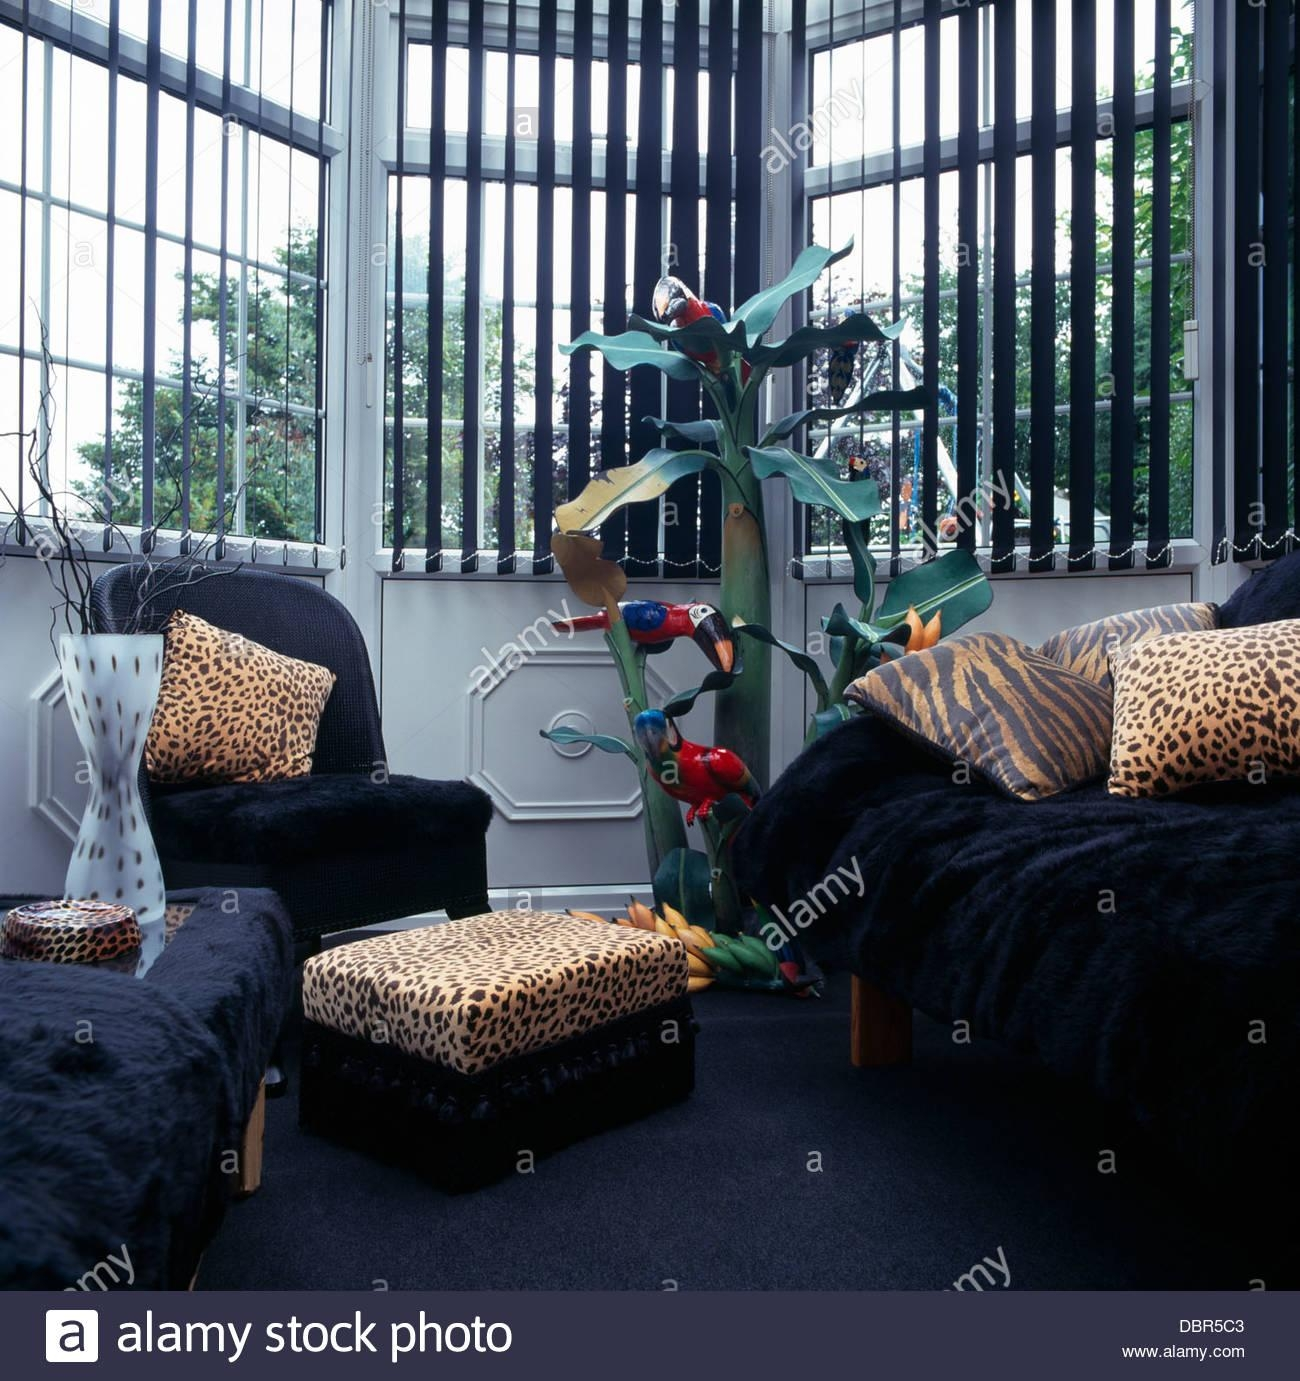 Animal Print Cushions On Black Armchairs And Sofa In Front Of Pertaining To Animal Print Sofas (View 15 of 20)